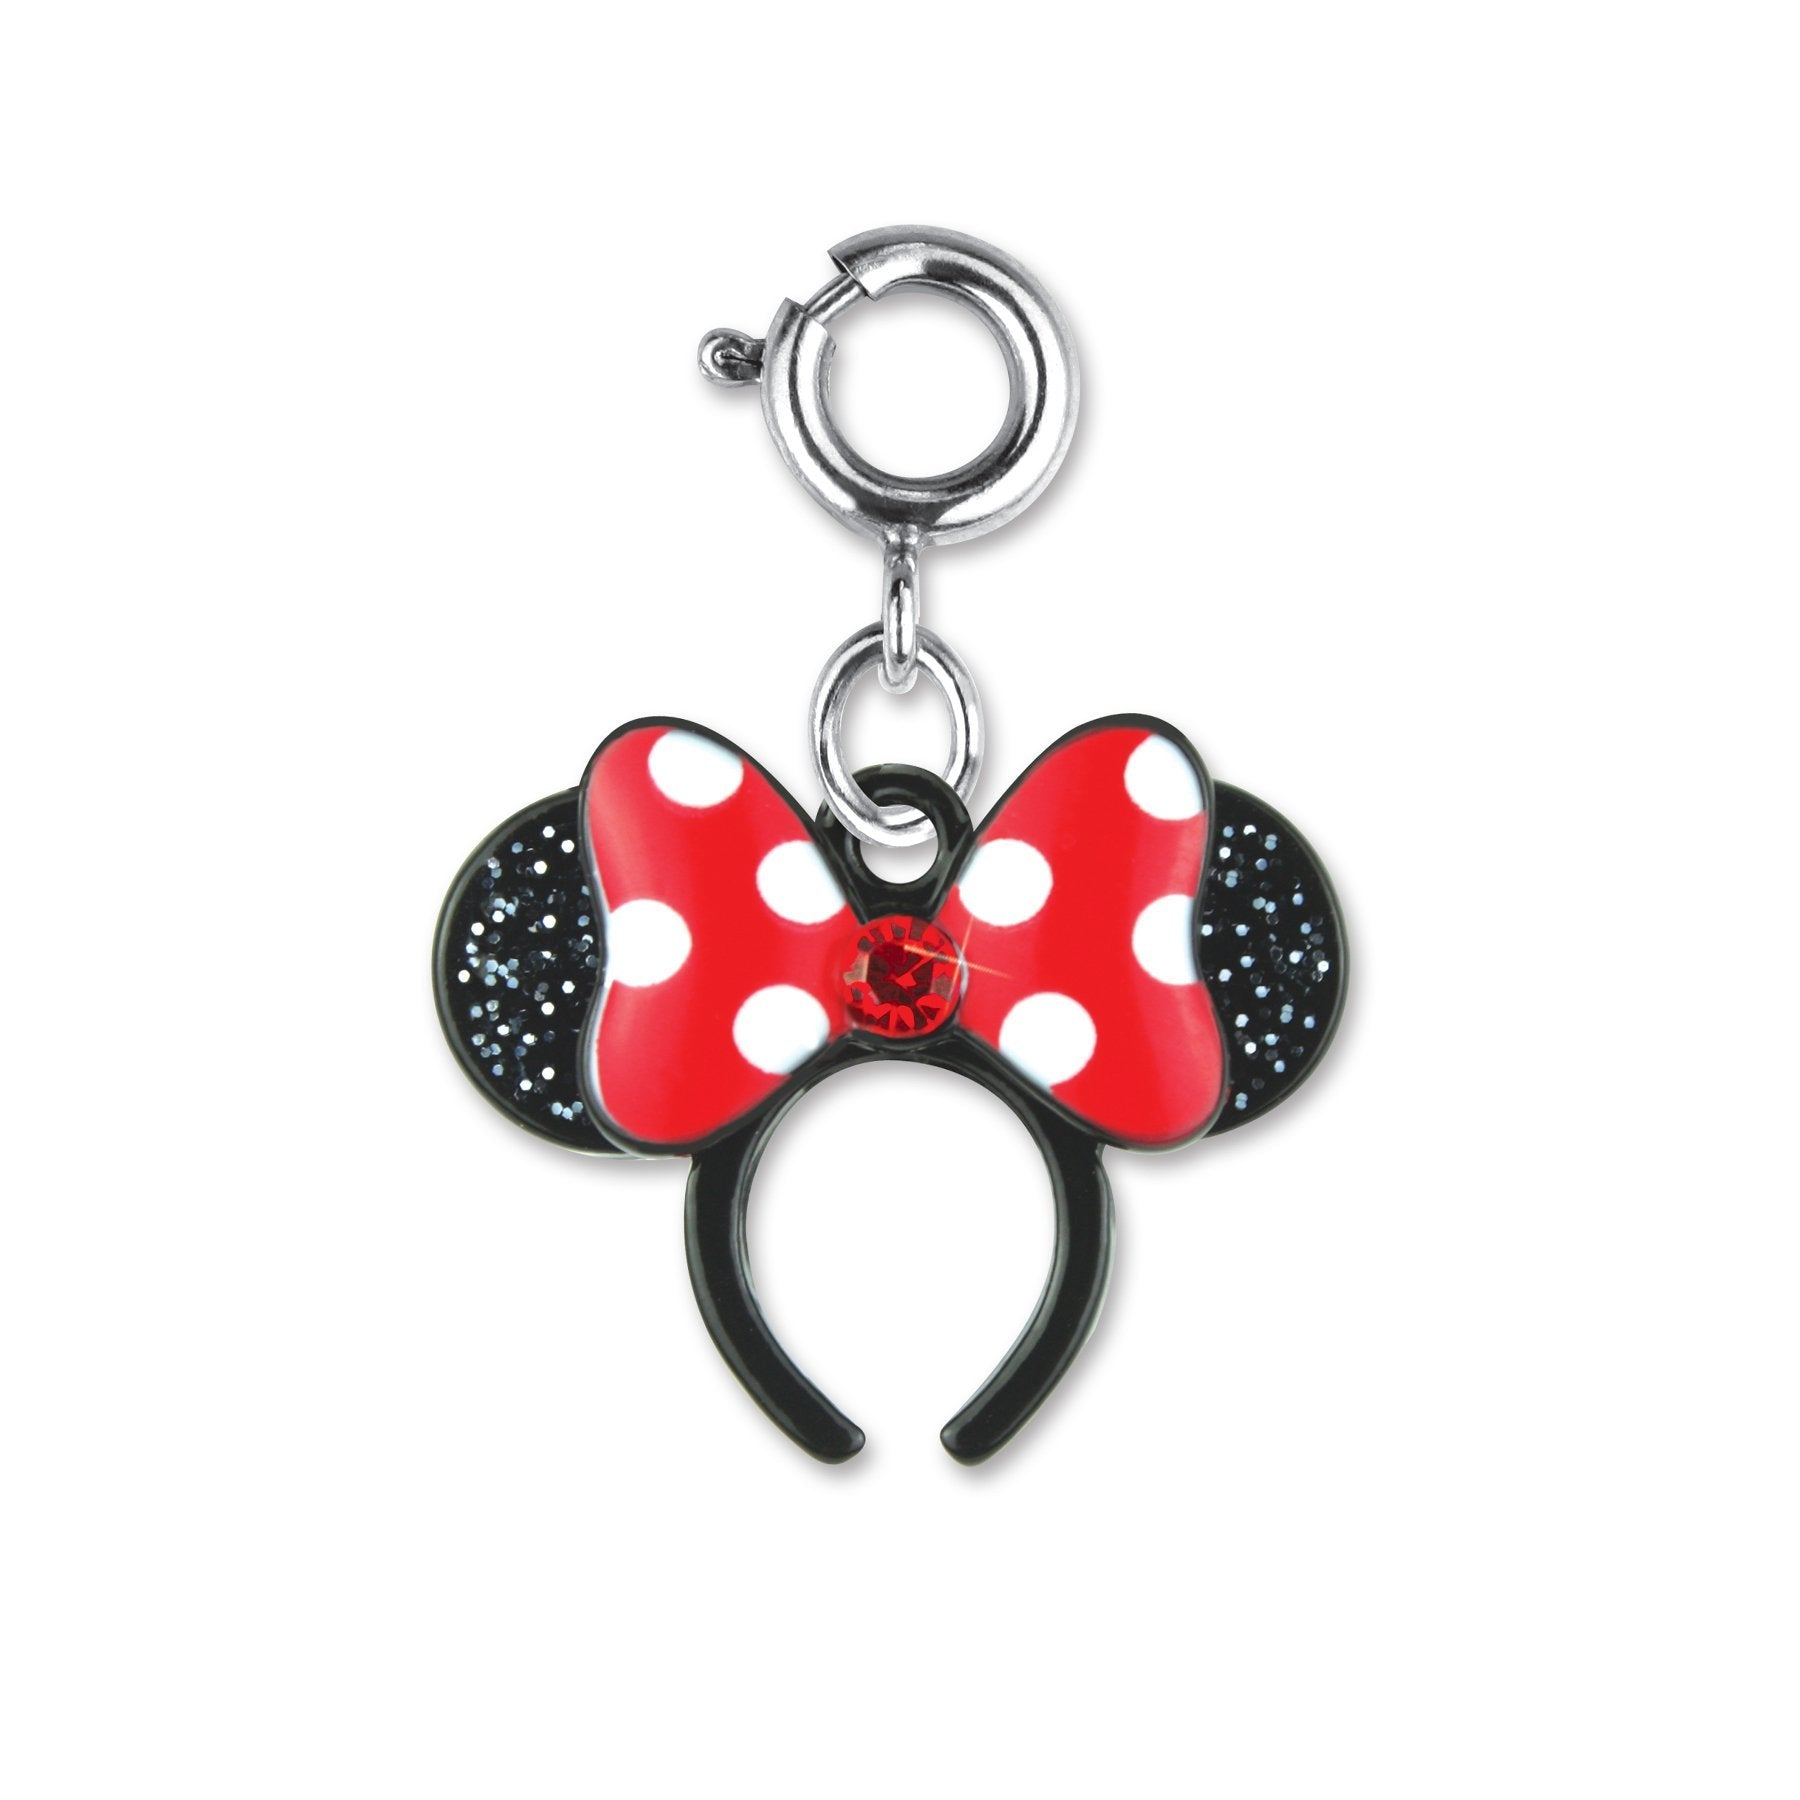 CHARM IT! Disney Charms - Minnie Ears Headband Charm - shopcharm-it